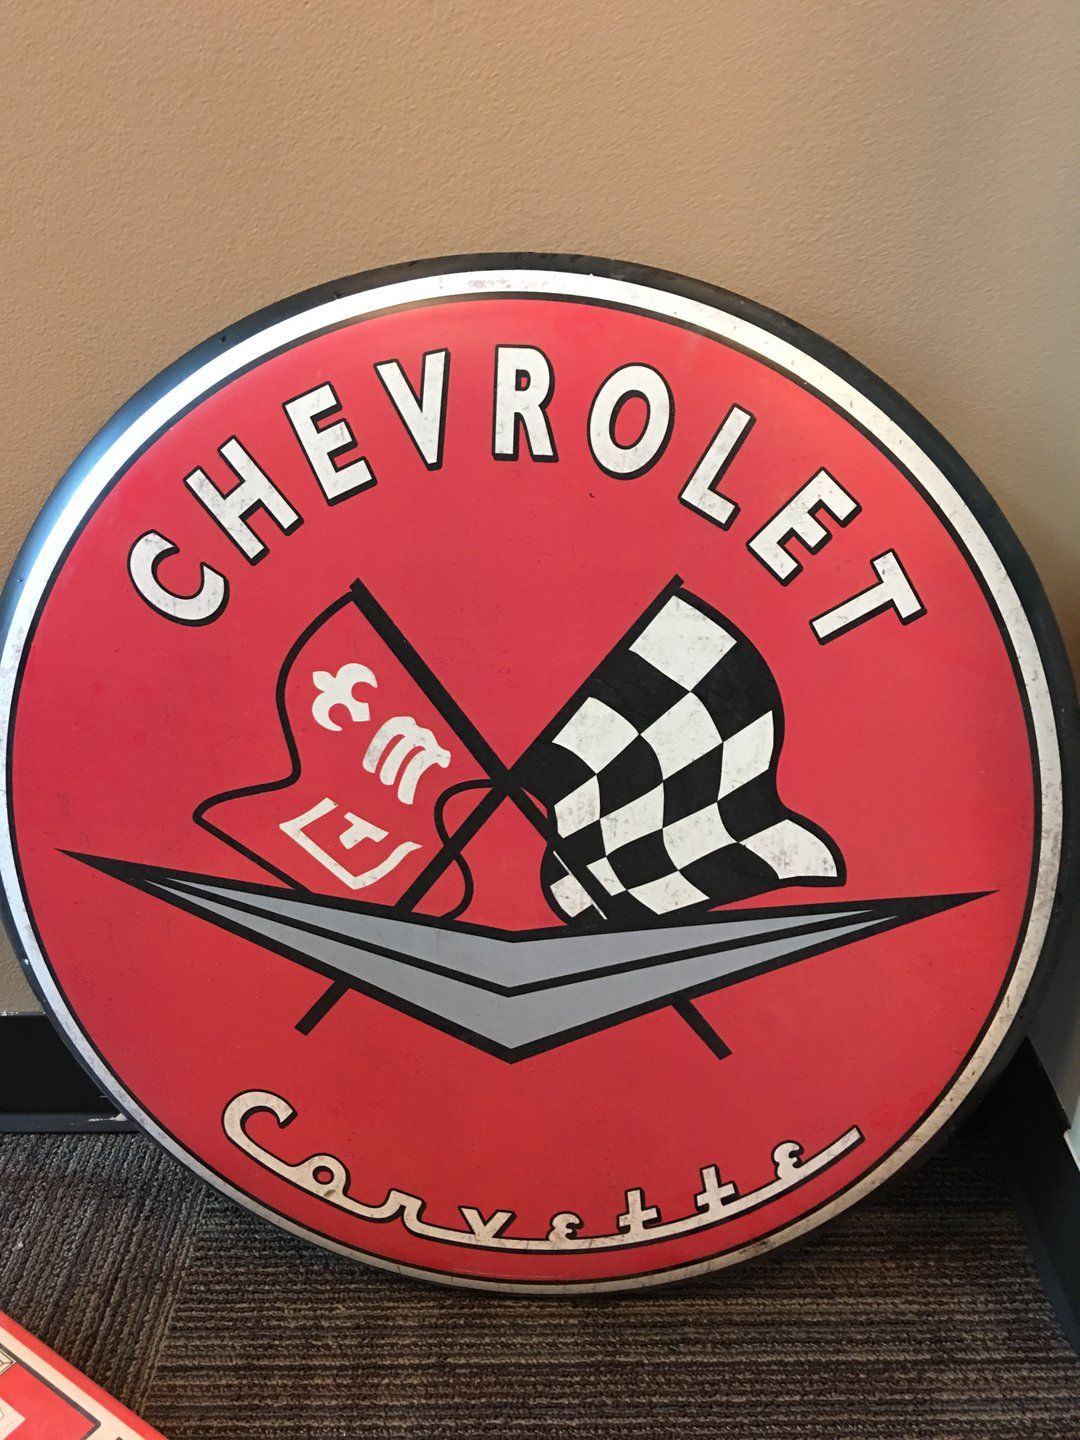 Chevrolet corvette button sign